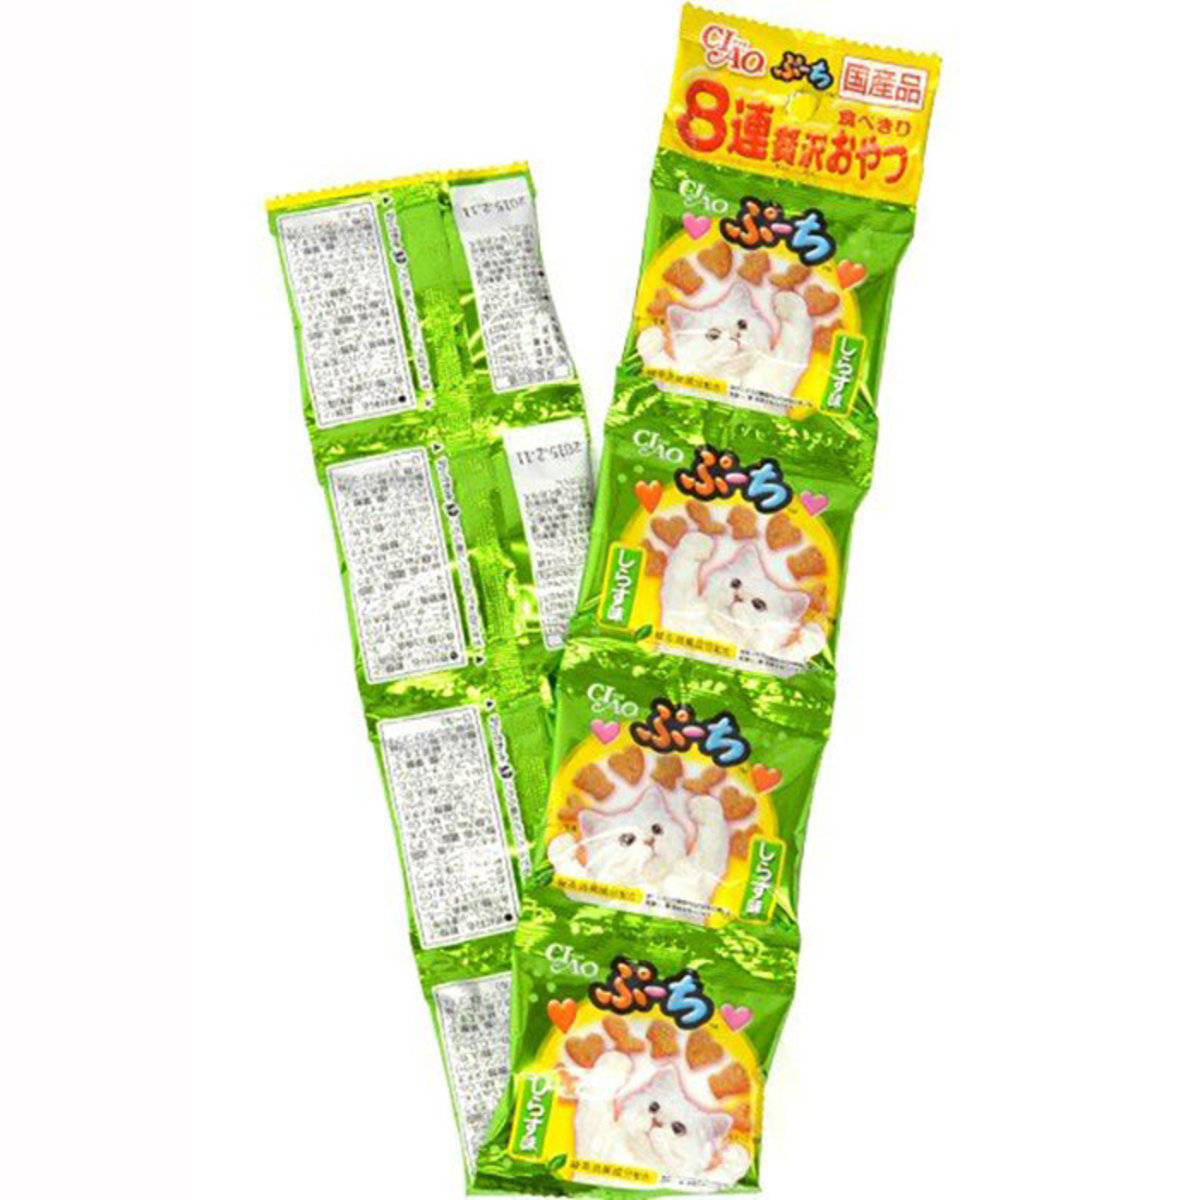 Eight Consecutive Crispy Cat Snacks - Whitefish 5g x 8 bags [Green]